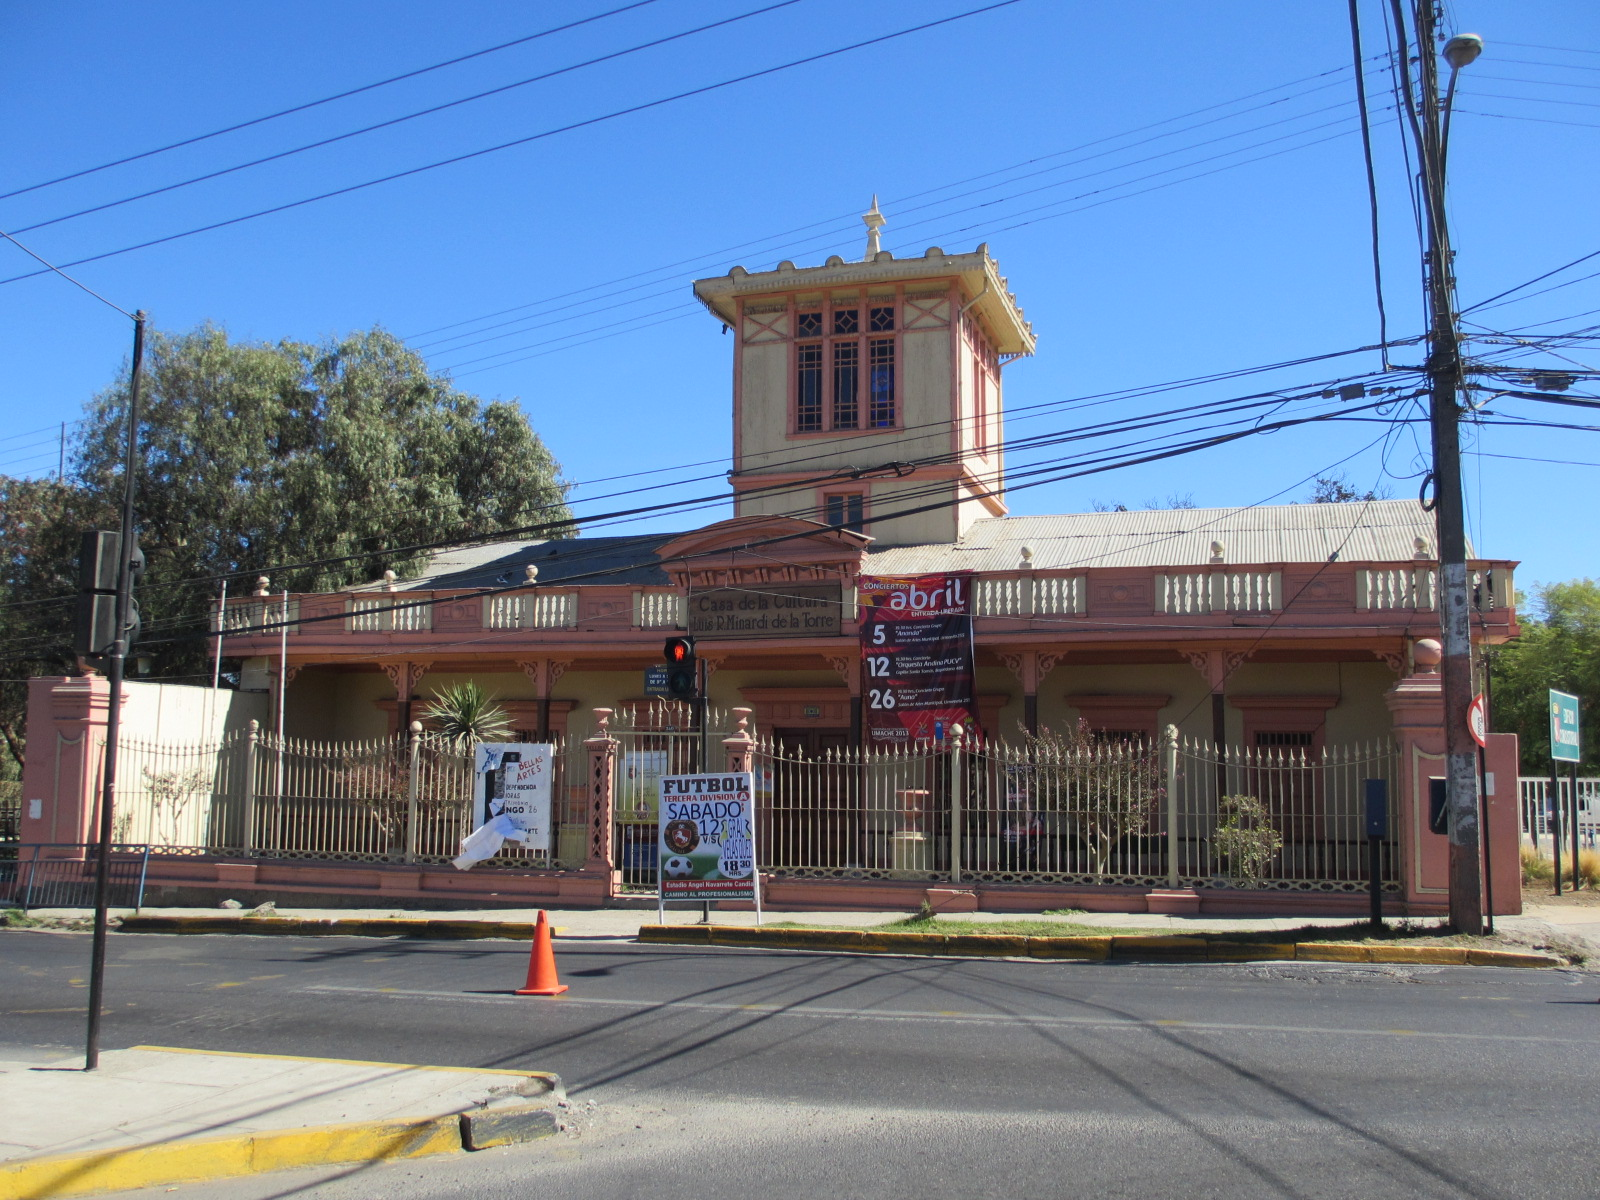 Chile limache cultural center